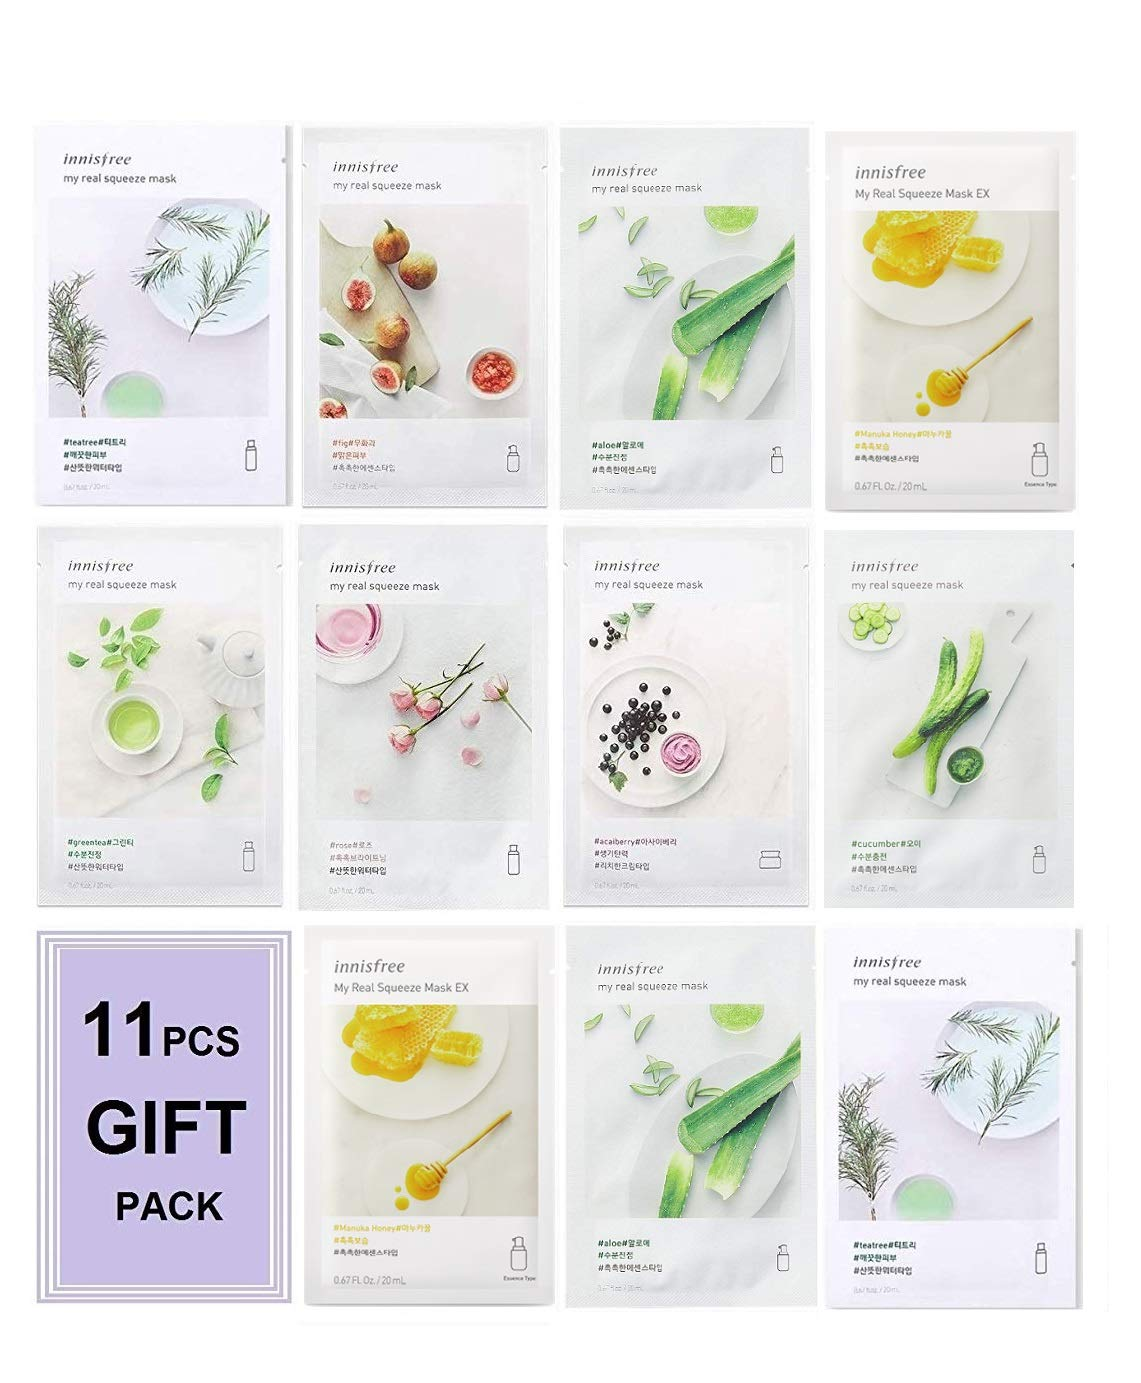 [New Upgraded] Innisfree Mask It's Real Squeeze Mask, now called My Real Squeeze Mask(Natural Cellulose Beauty Korean Face Sheet Masks 11pcs Custom Packaged in FACIAL-MASK Gift Pack)